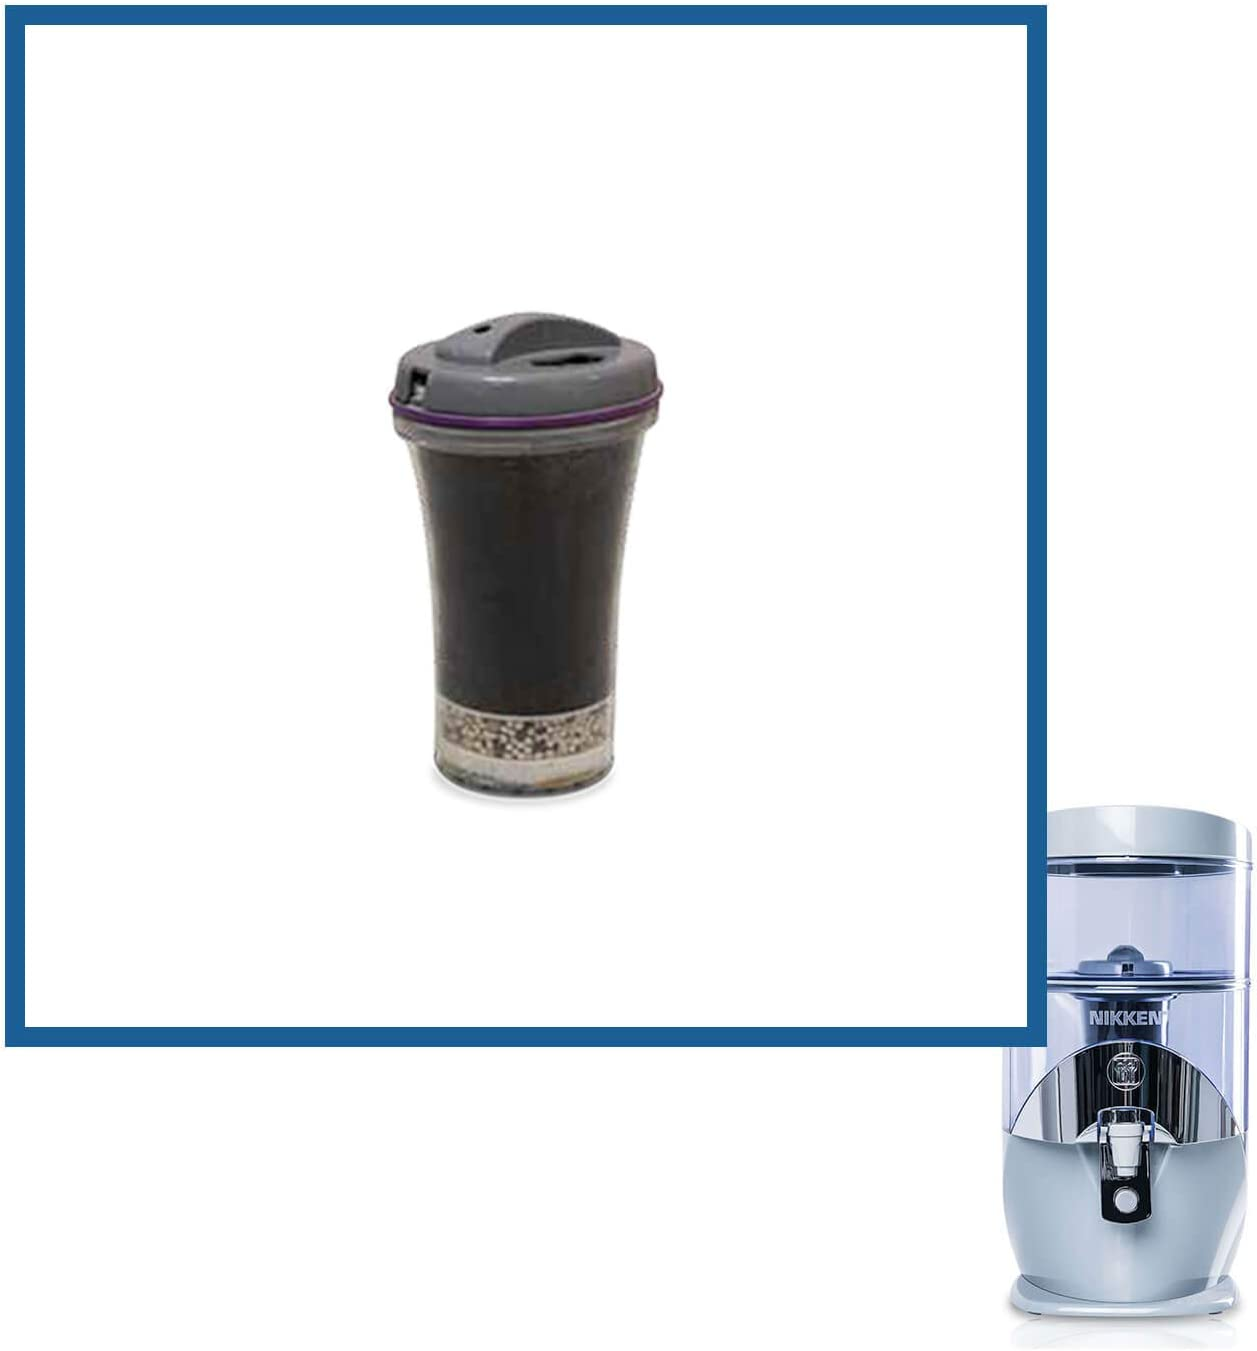 Nikken Waterfall 1 Filter Cartridge 13845 - Replacement for Gravity Water Filter Purifier System 1384 - PiMag Water System Components - Helps Body Recover from Acidity - Up to 45 liters of Water a Day: Home & Kitchen